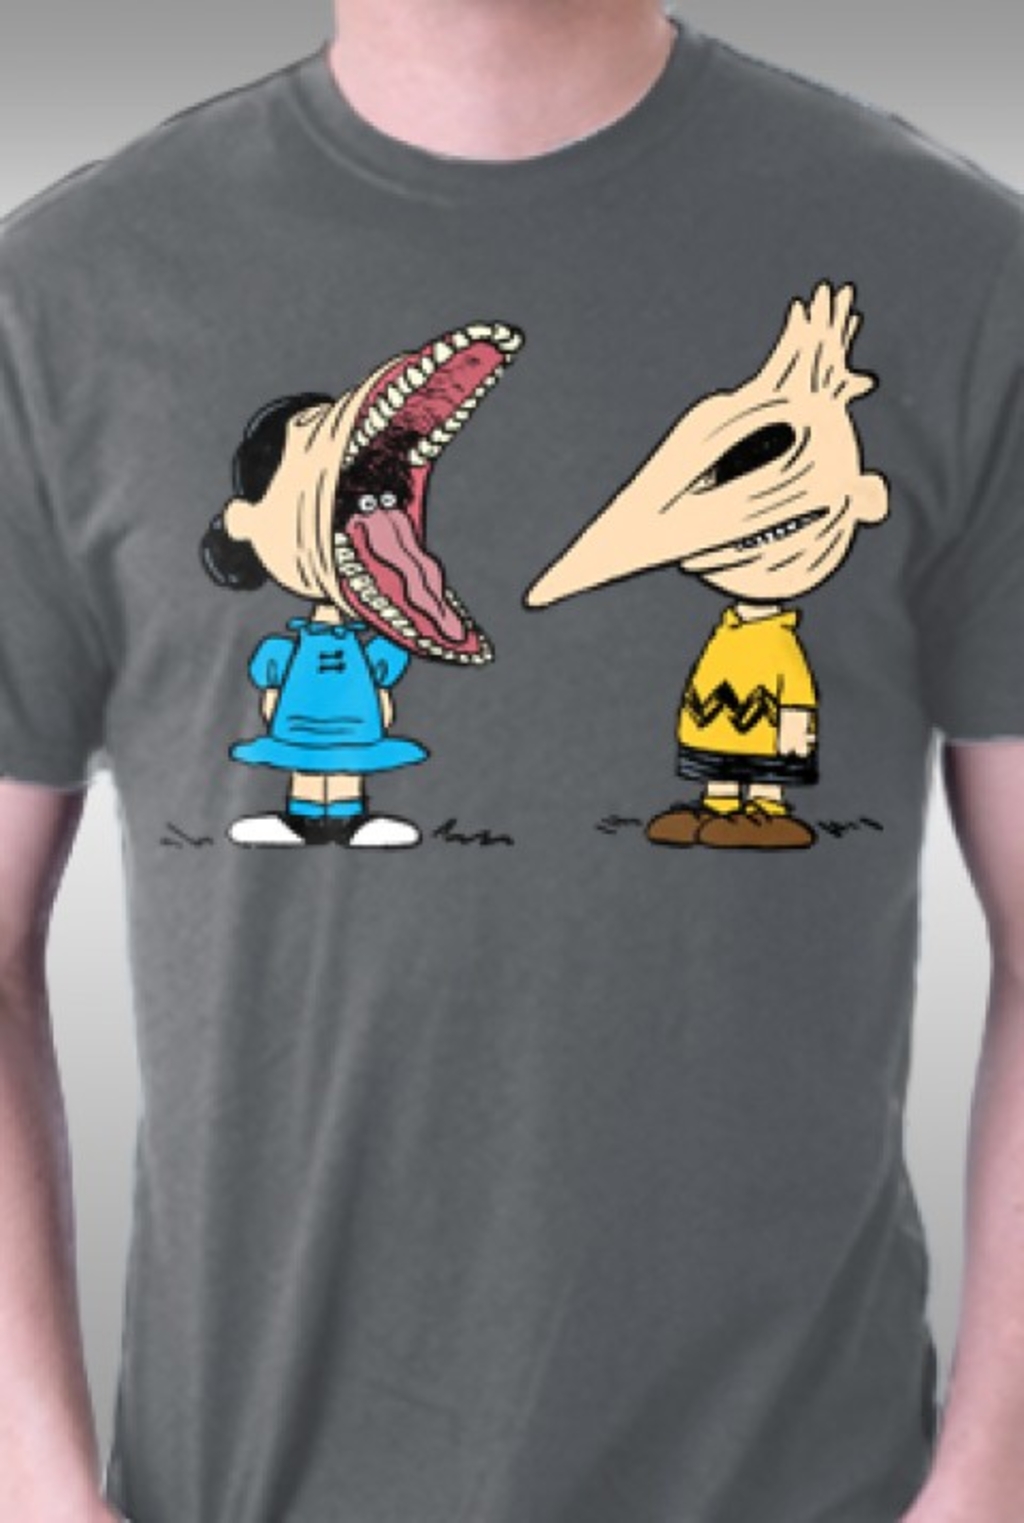 TeeFury: Good Grief, The Afterlife